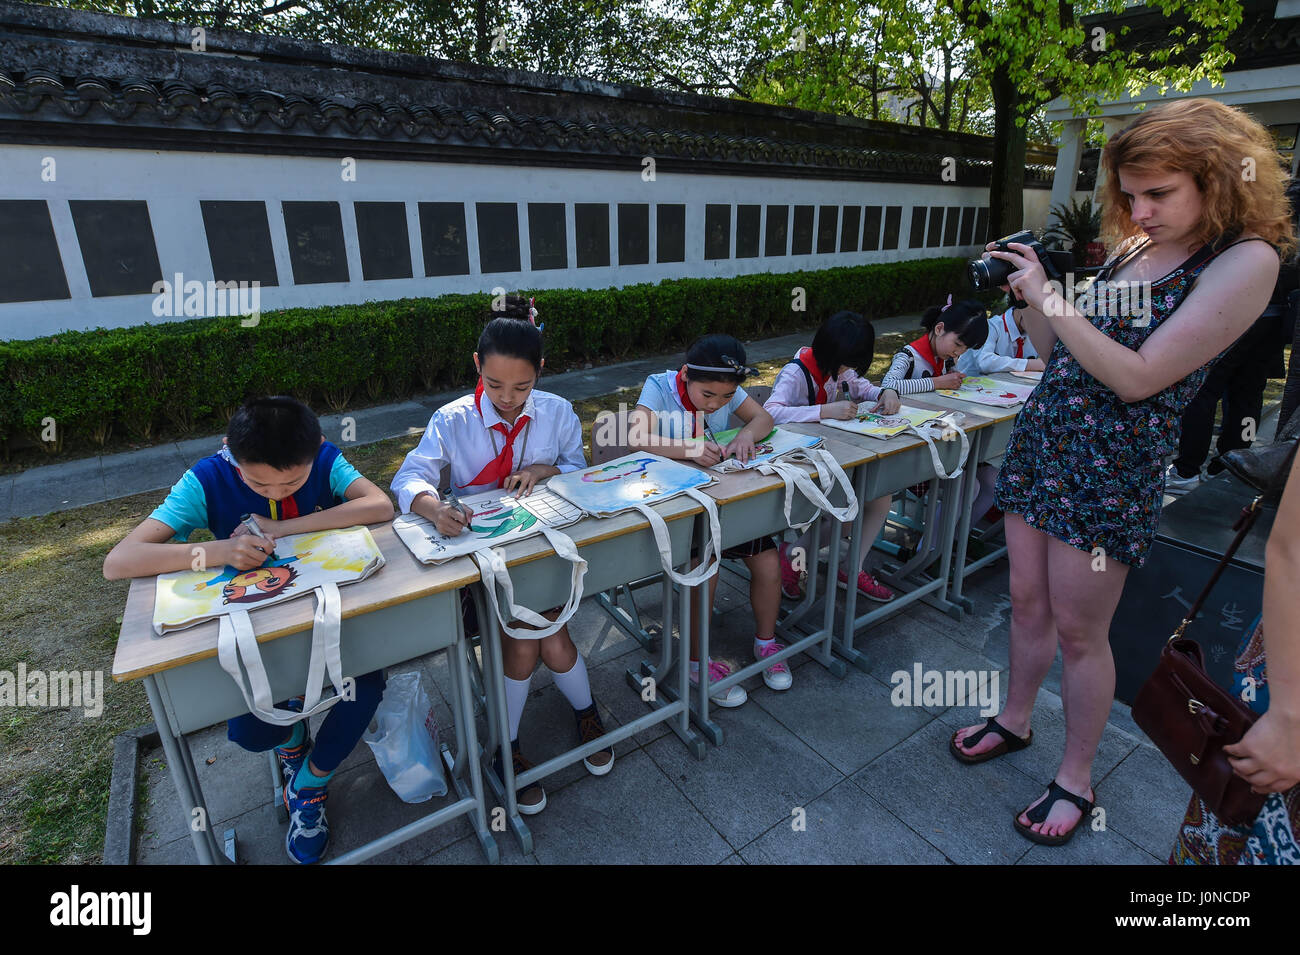 (170415) -- TONGXIANG, April 15, 2017 (Xinhua) -- Foreign visitors record videos of children drawing on environment - Stock Image